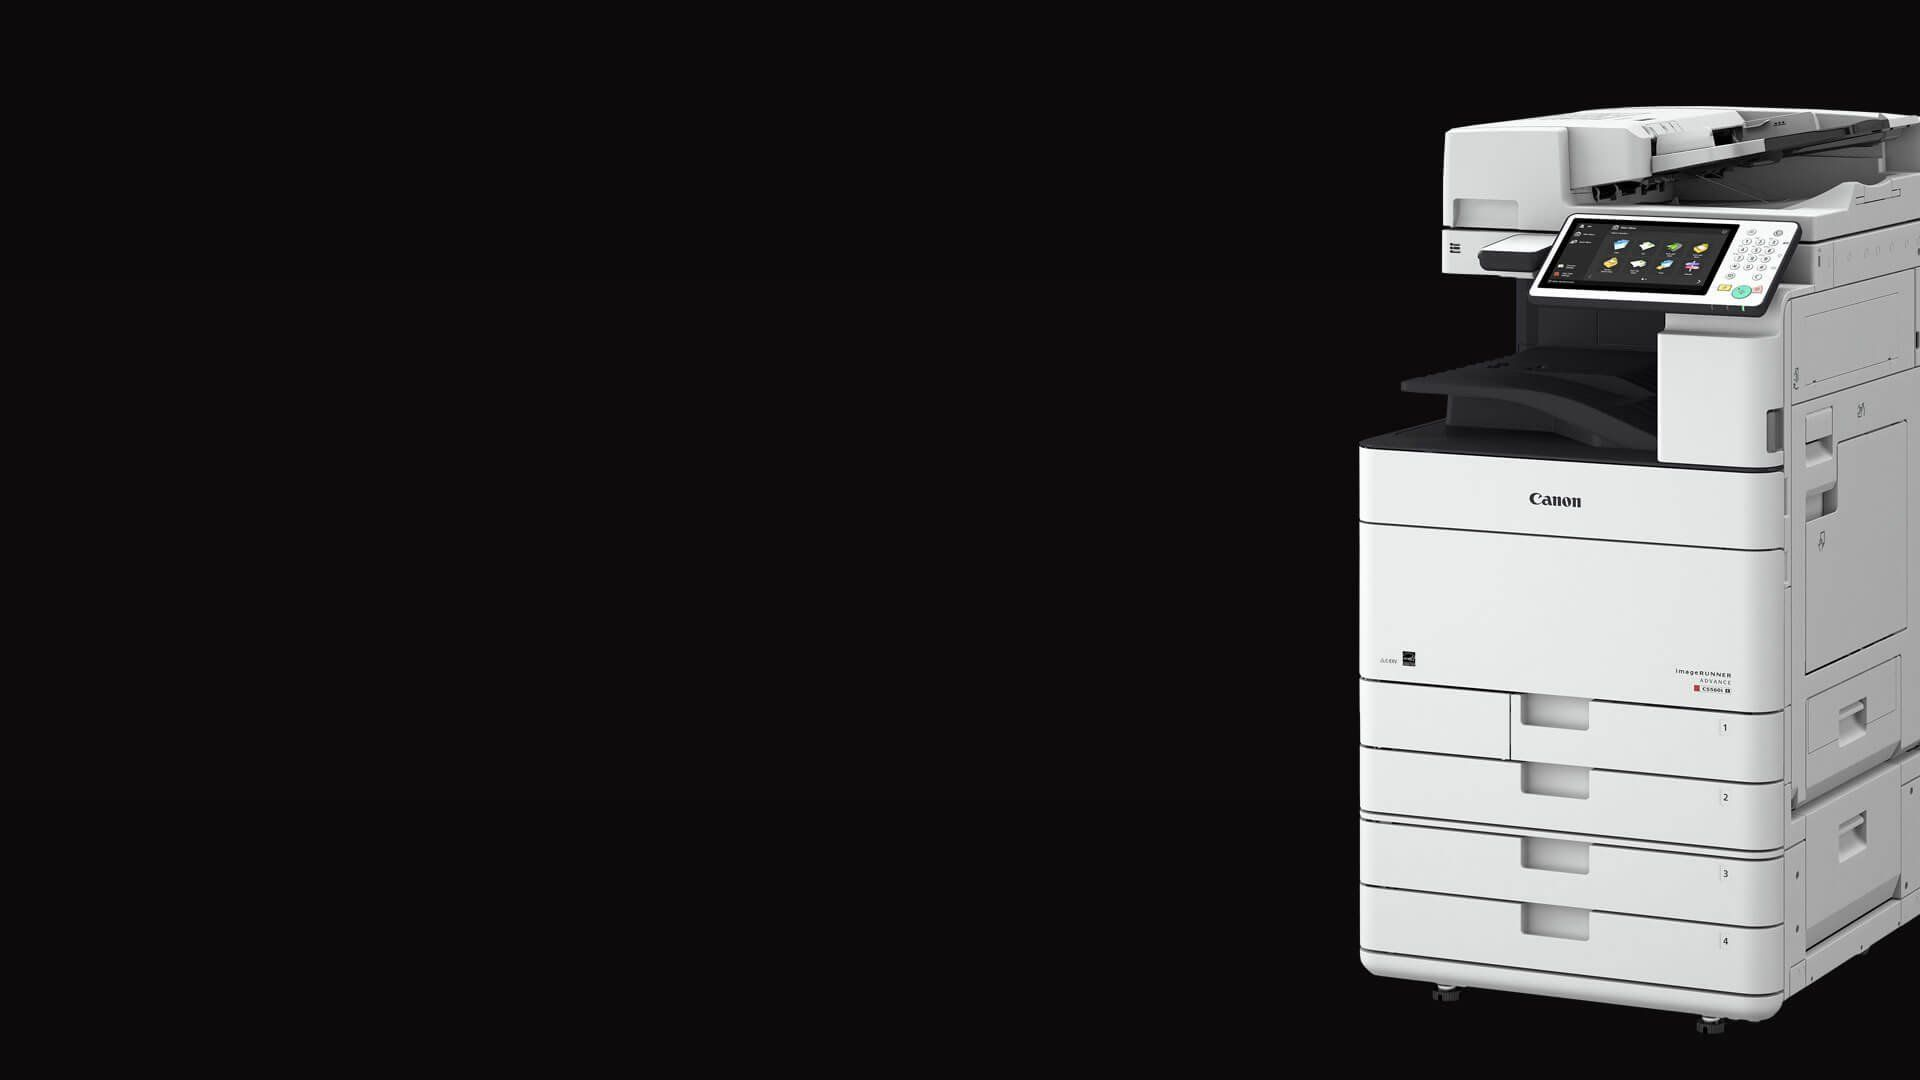 imageRUNNER ADVANCE C5500 II series